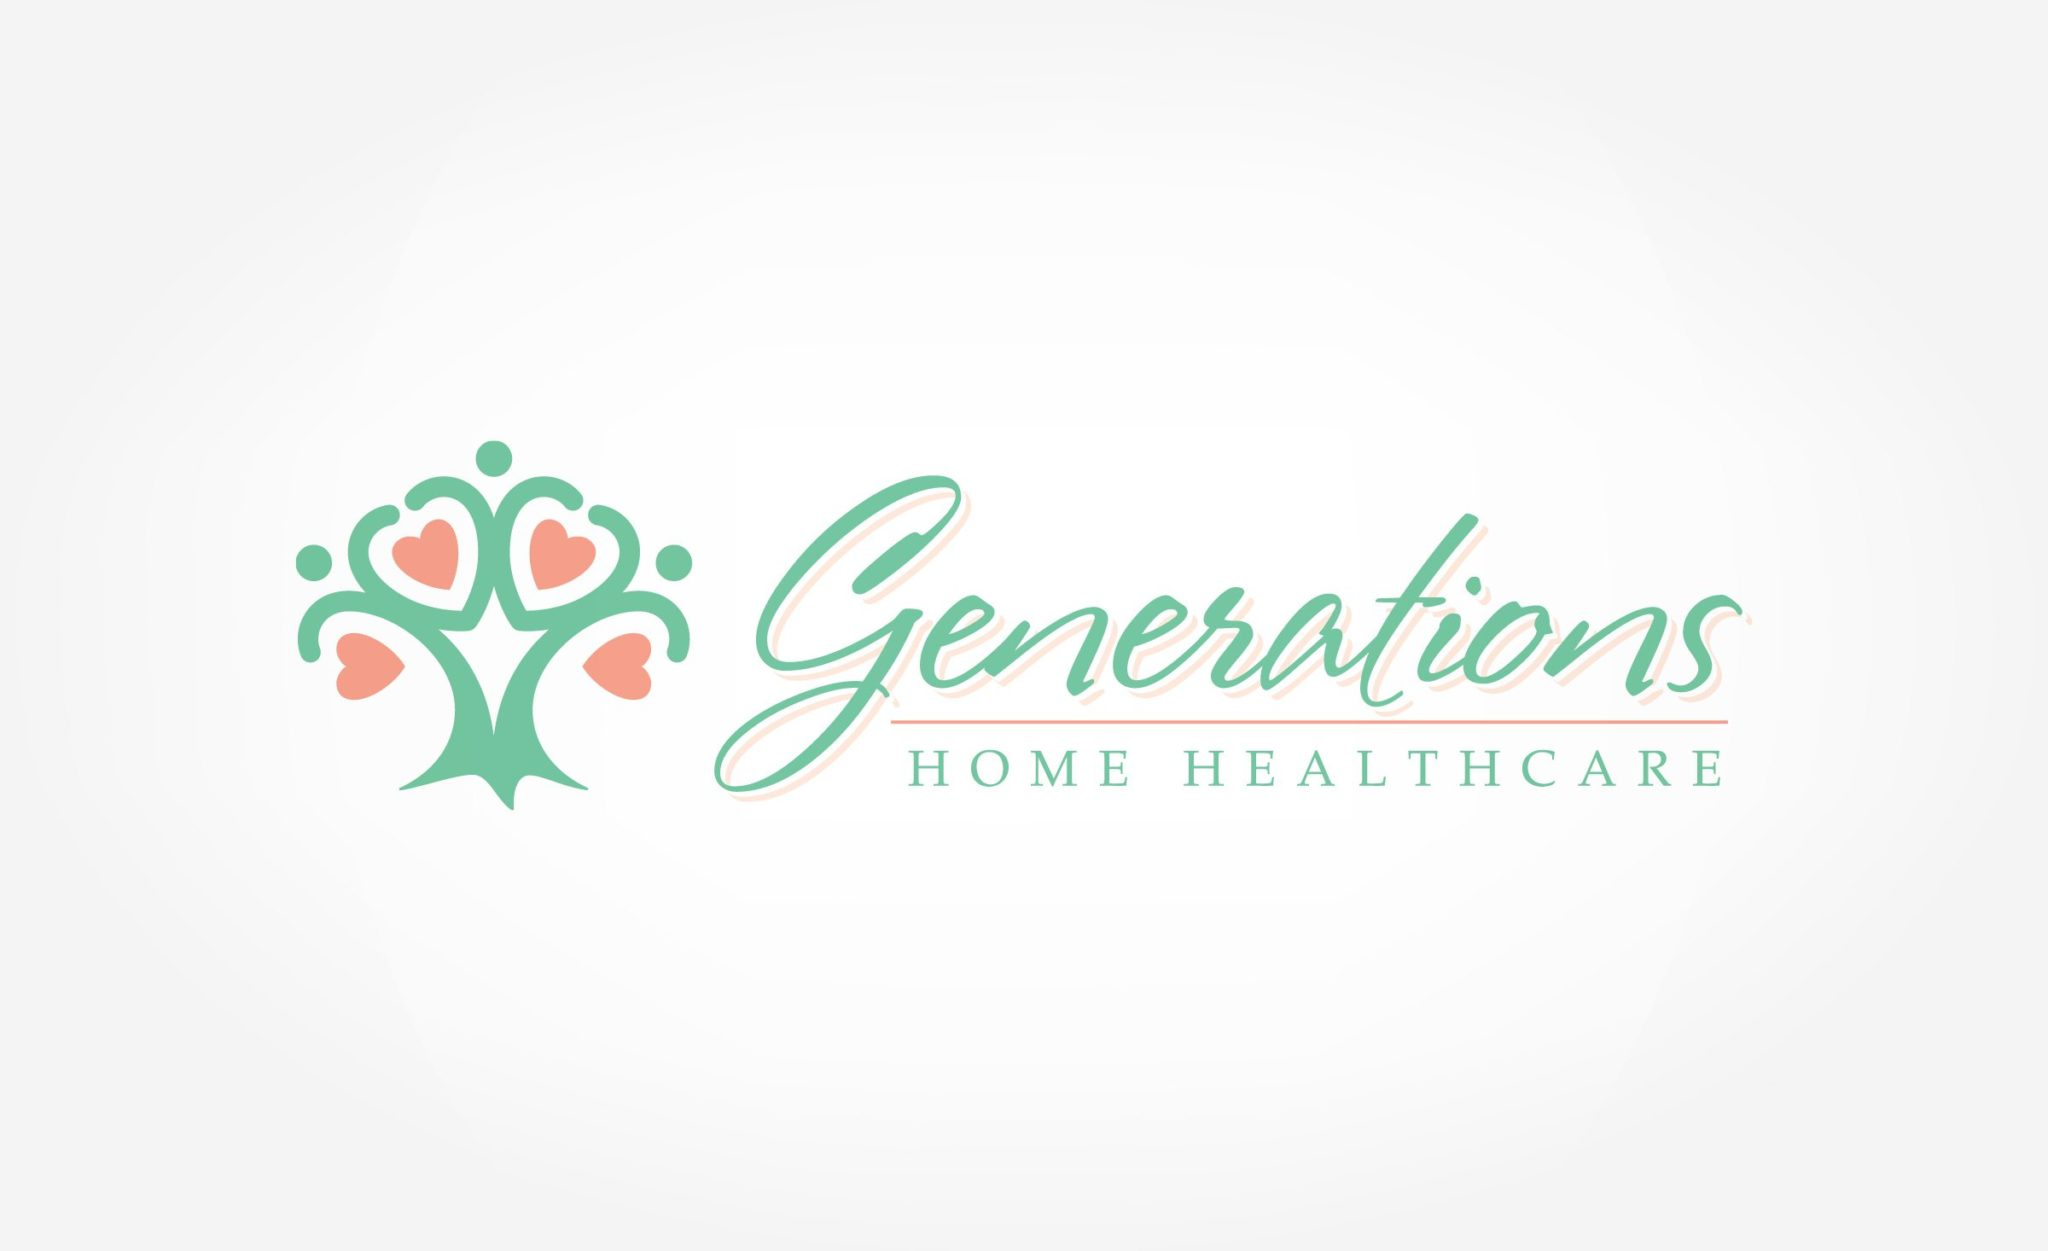 Generations Home Healthcare